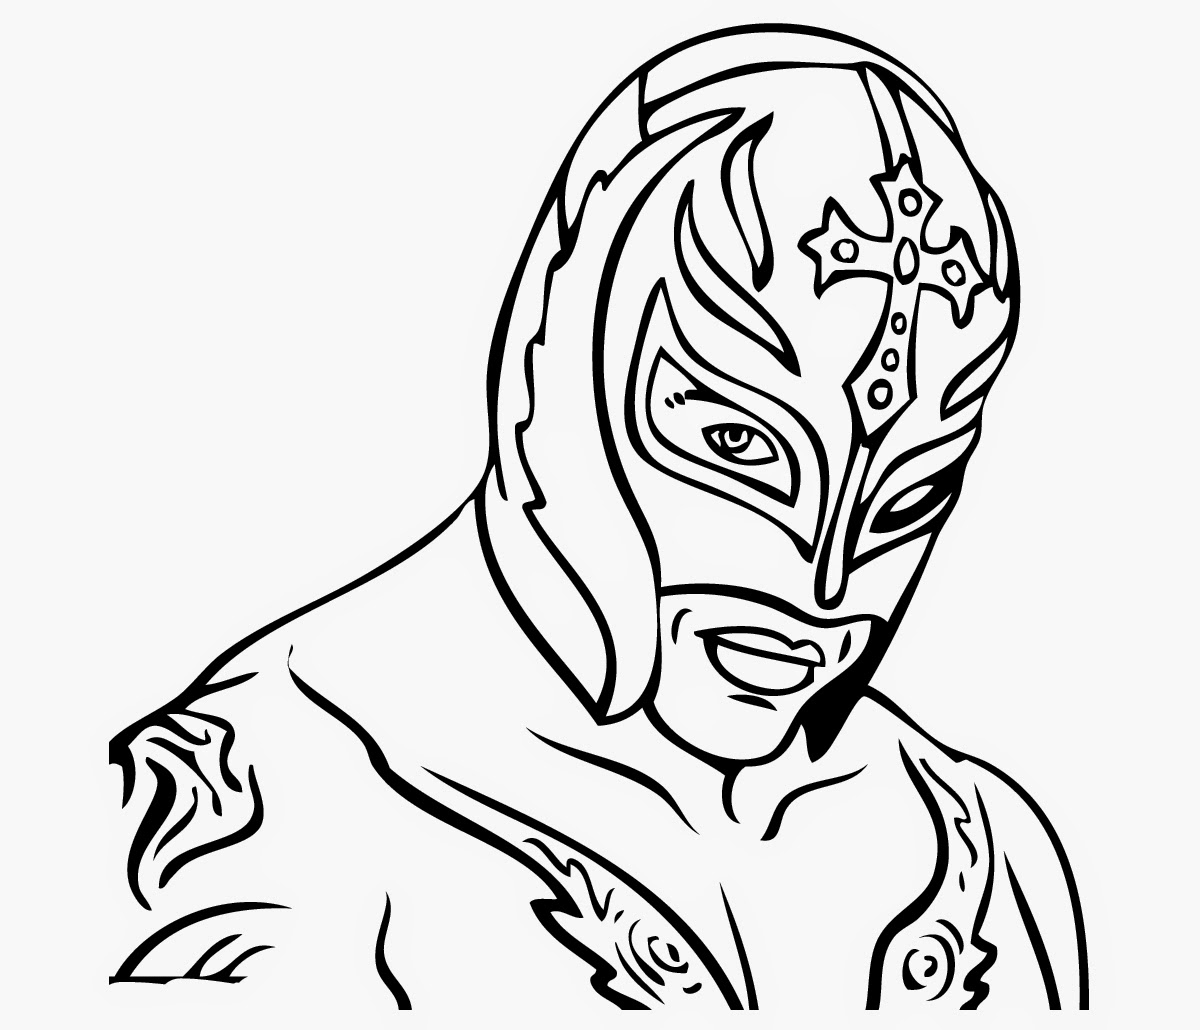 1200x1030 Rey Mysterio Coloring Pages Printable Coloring For Kids